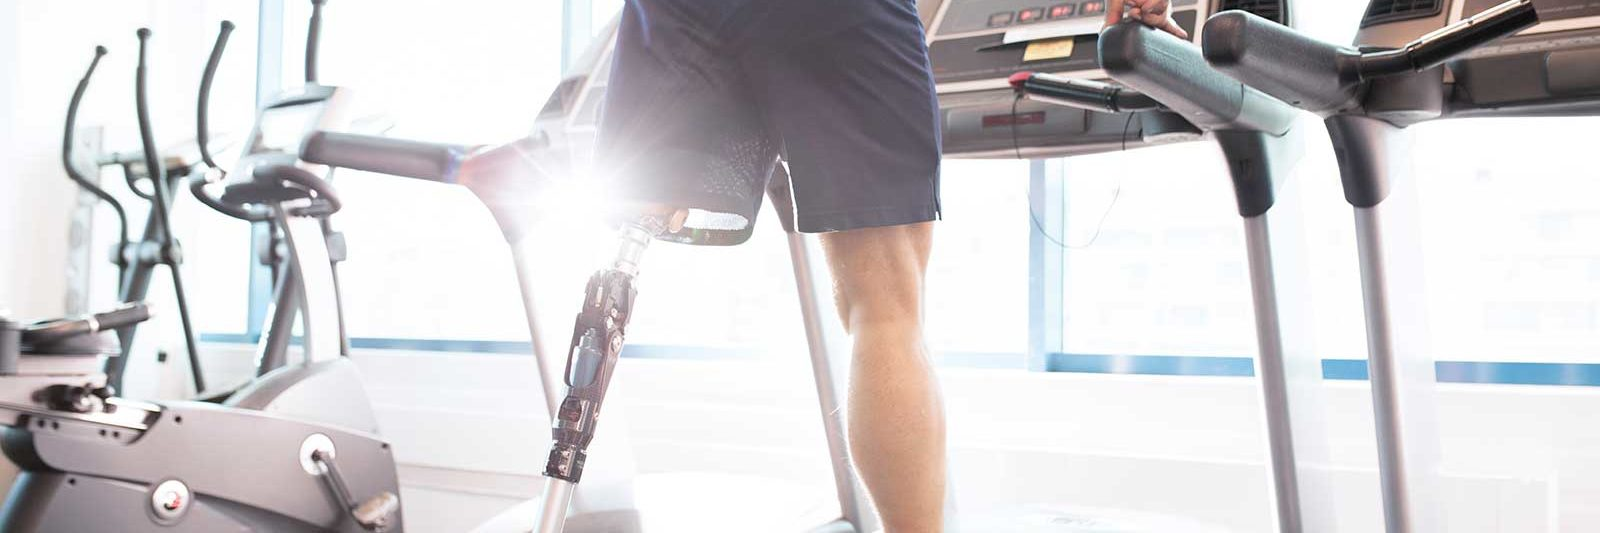 Amputee with Prothetic Leg on Treadmill